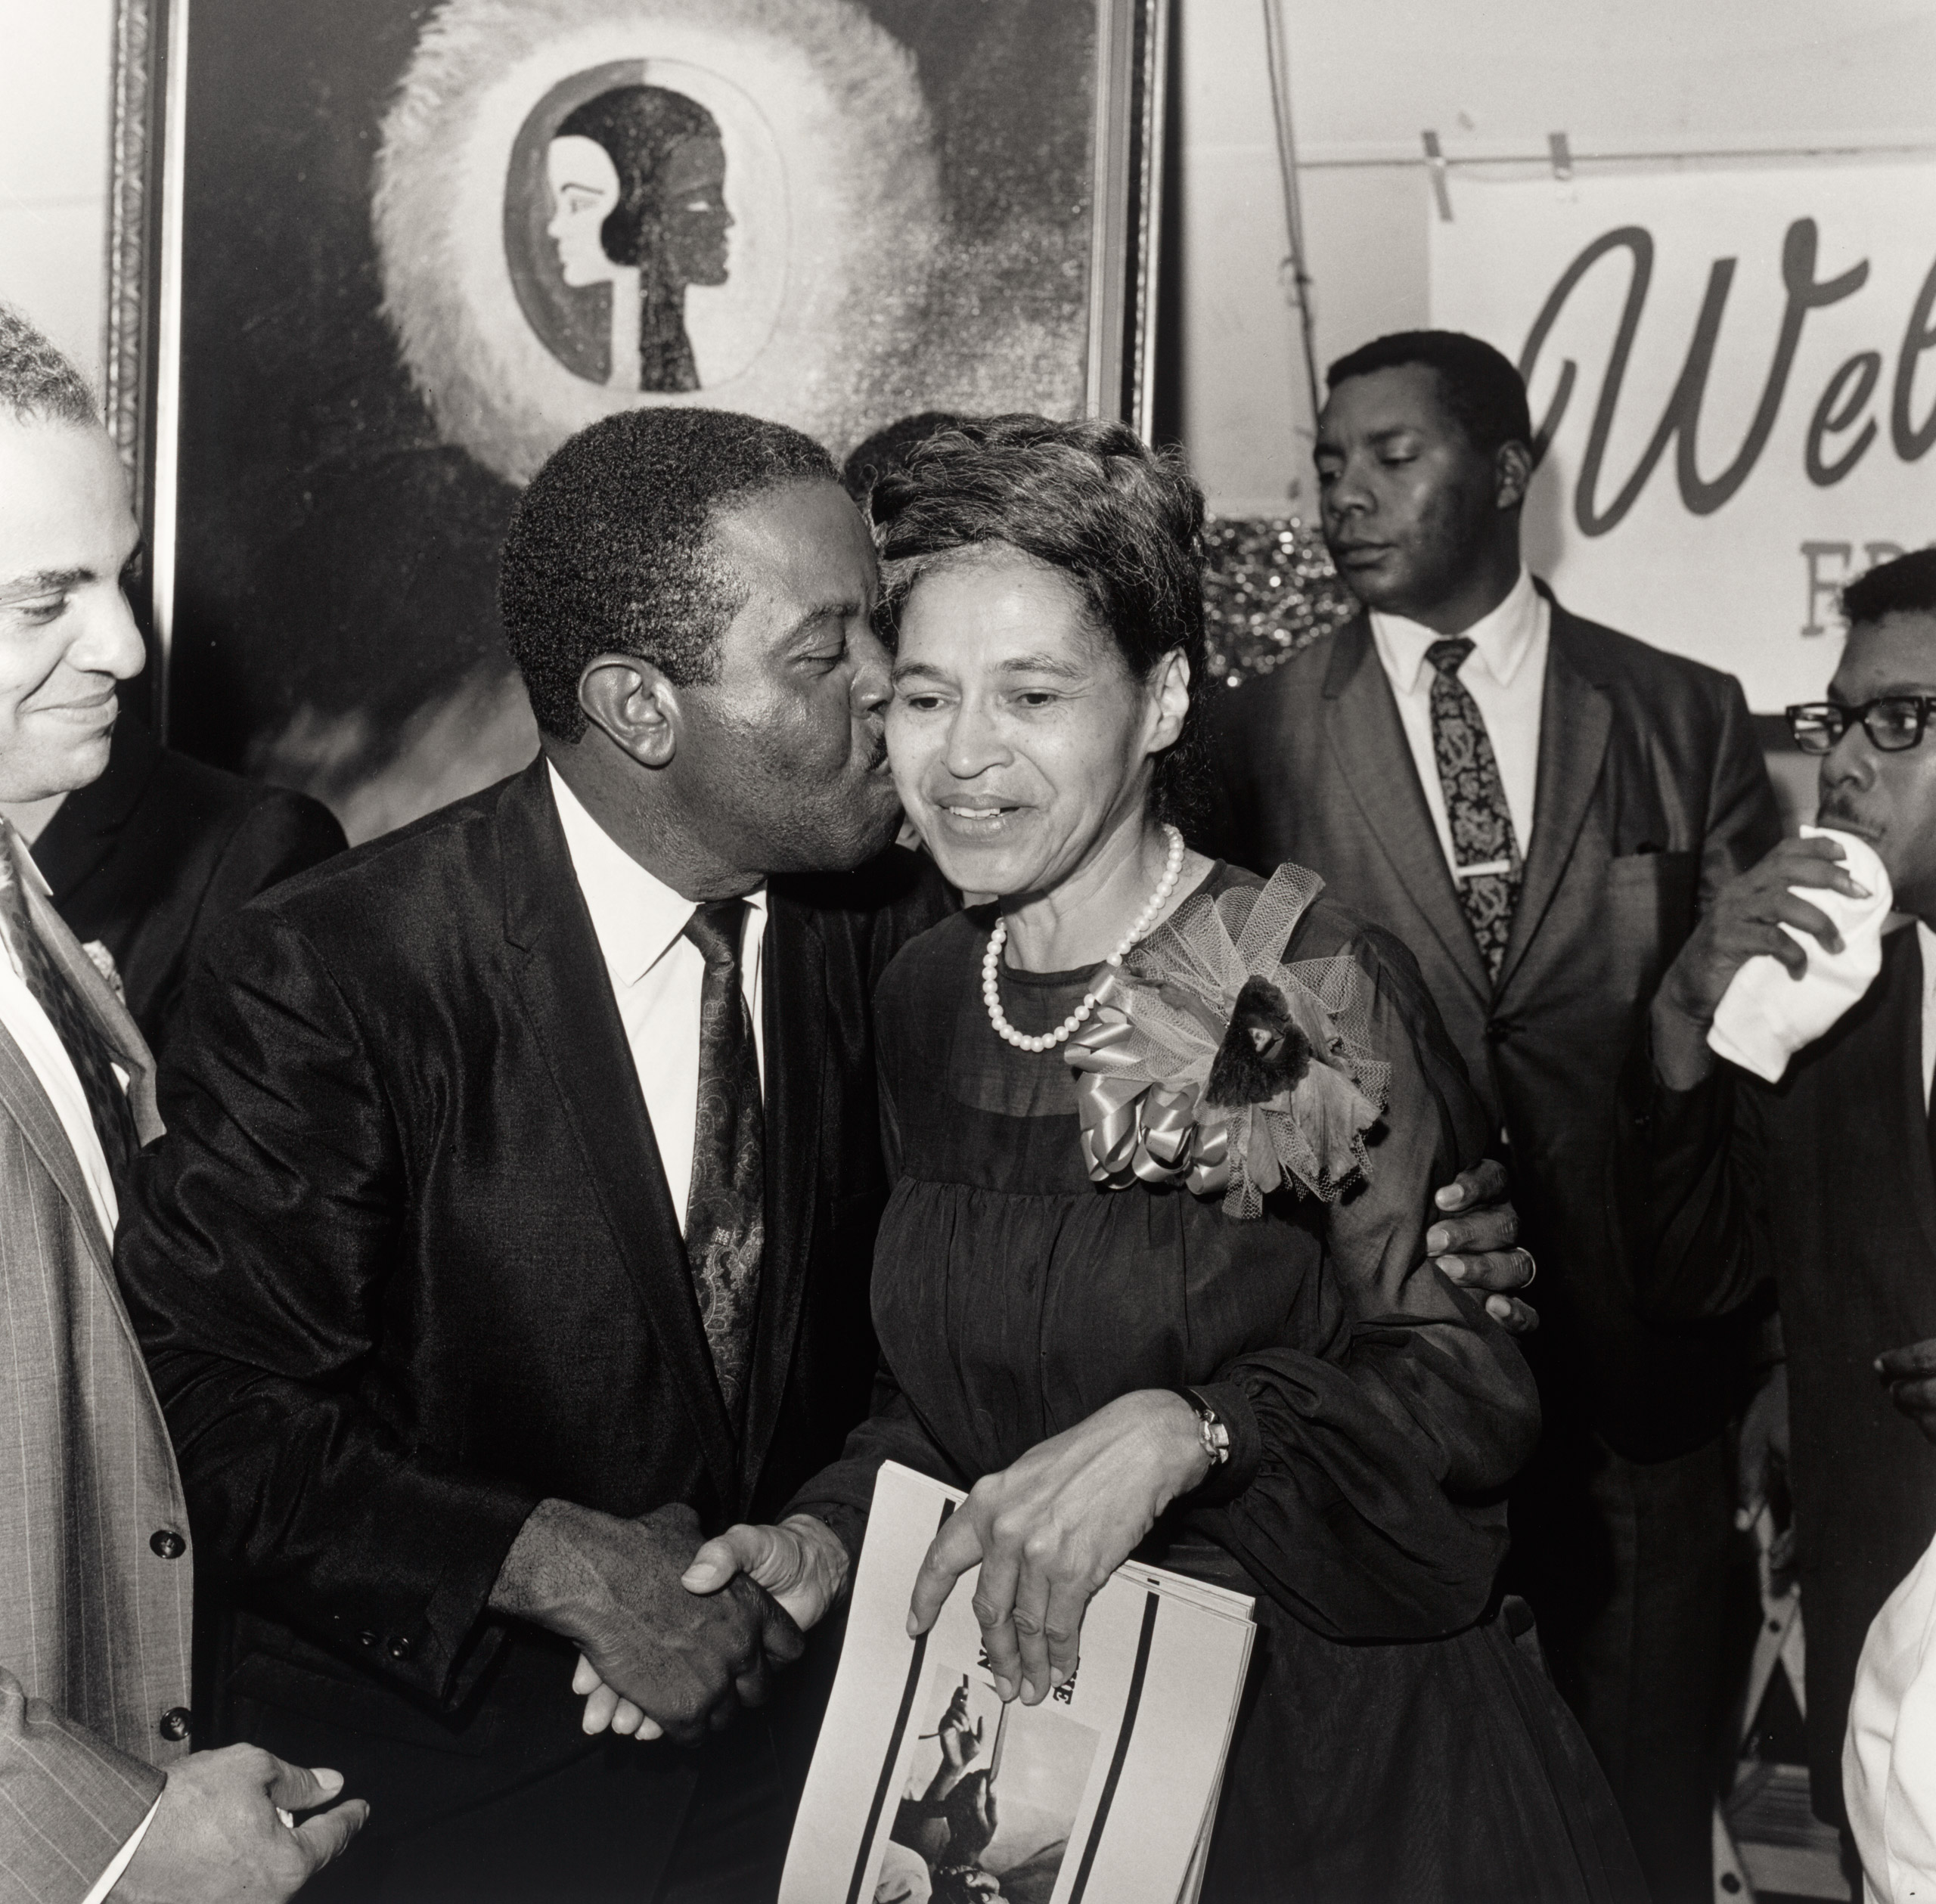 Southern Christian Leadership Conference.                               Rev Ralph Abernathy embracing Rosa Parks, Benjamin Hooks on left, SCLC Convention, Memphis, TN. July 1968.